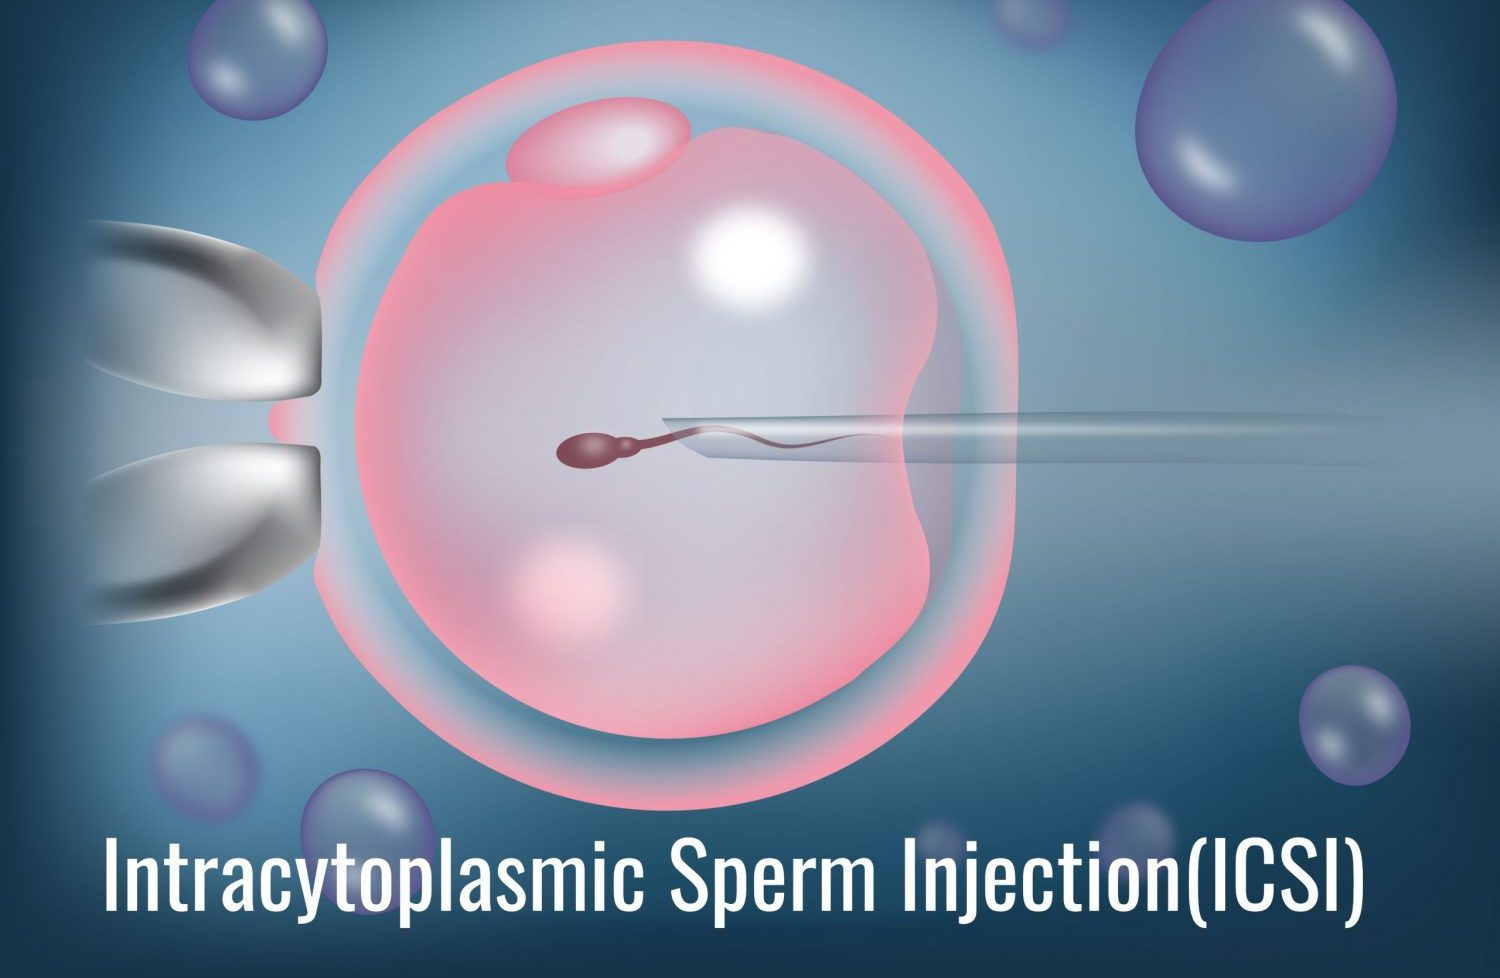 What is Intracytoplasmic Sperm Injection?